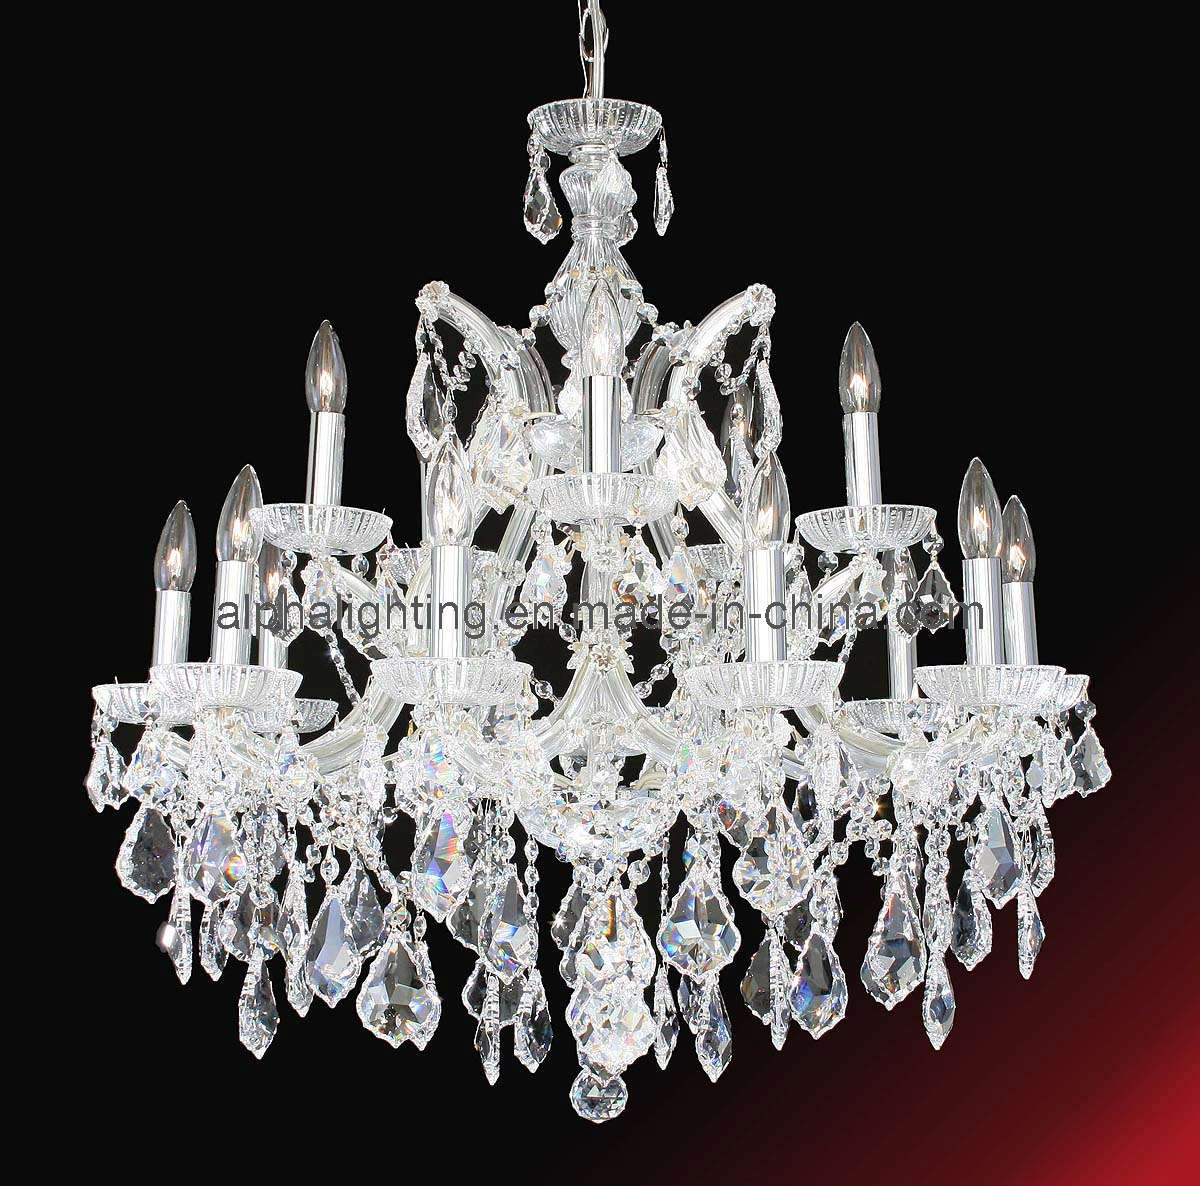 China Beauty Modern Crystal Chandelier Lamp Am2116 13 China With Regard To Beautiful Chandelier (Image 9 of 15)